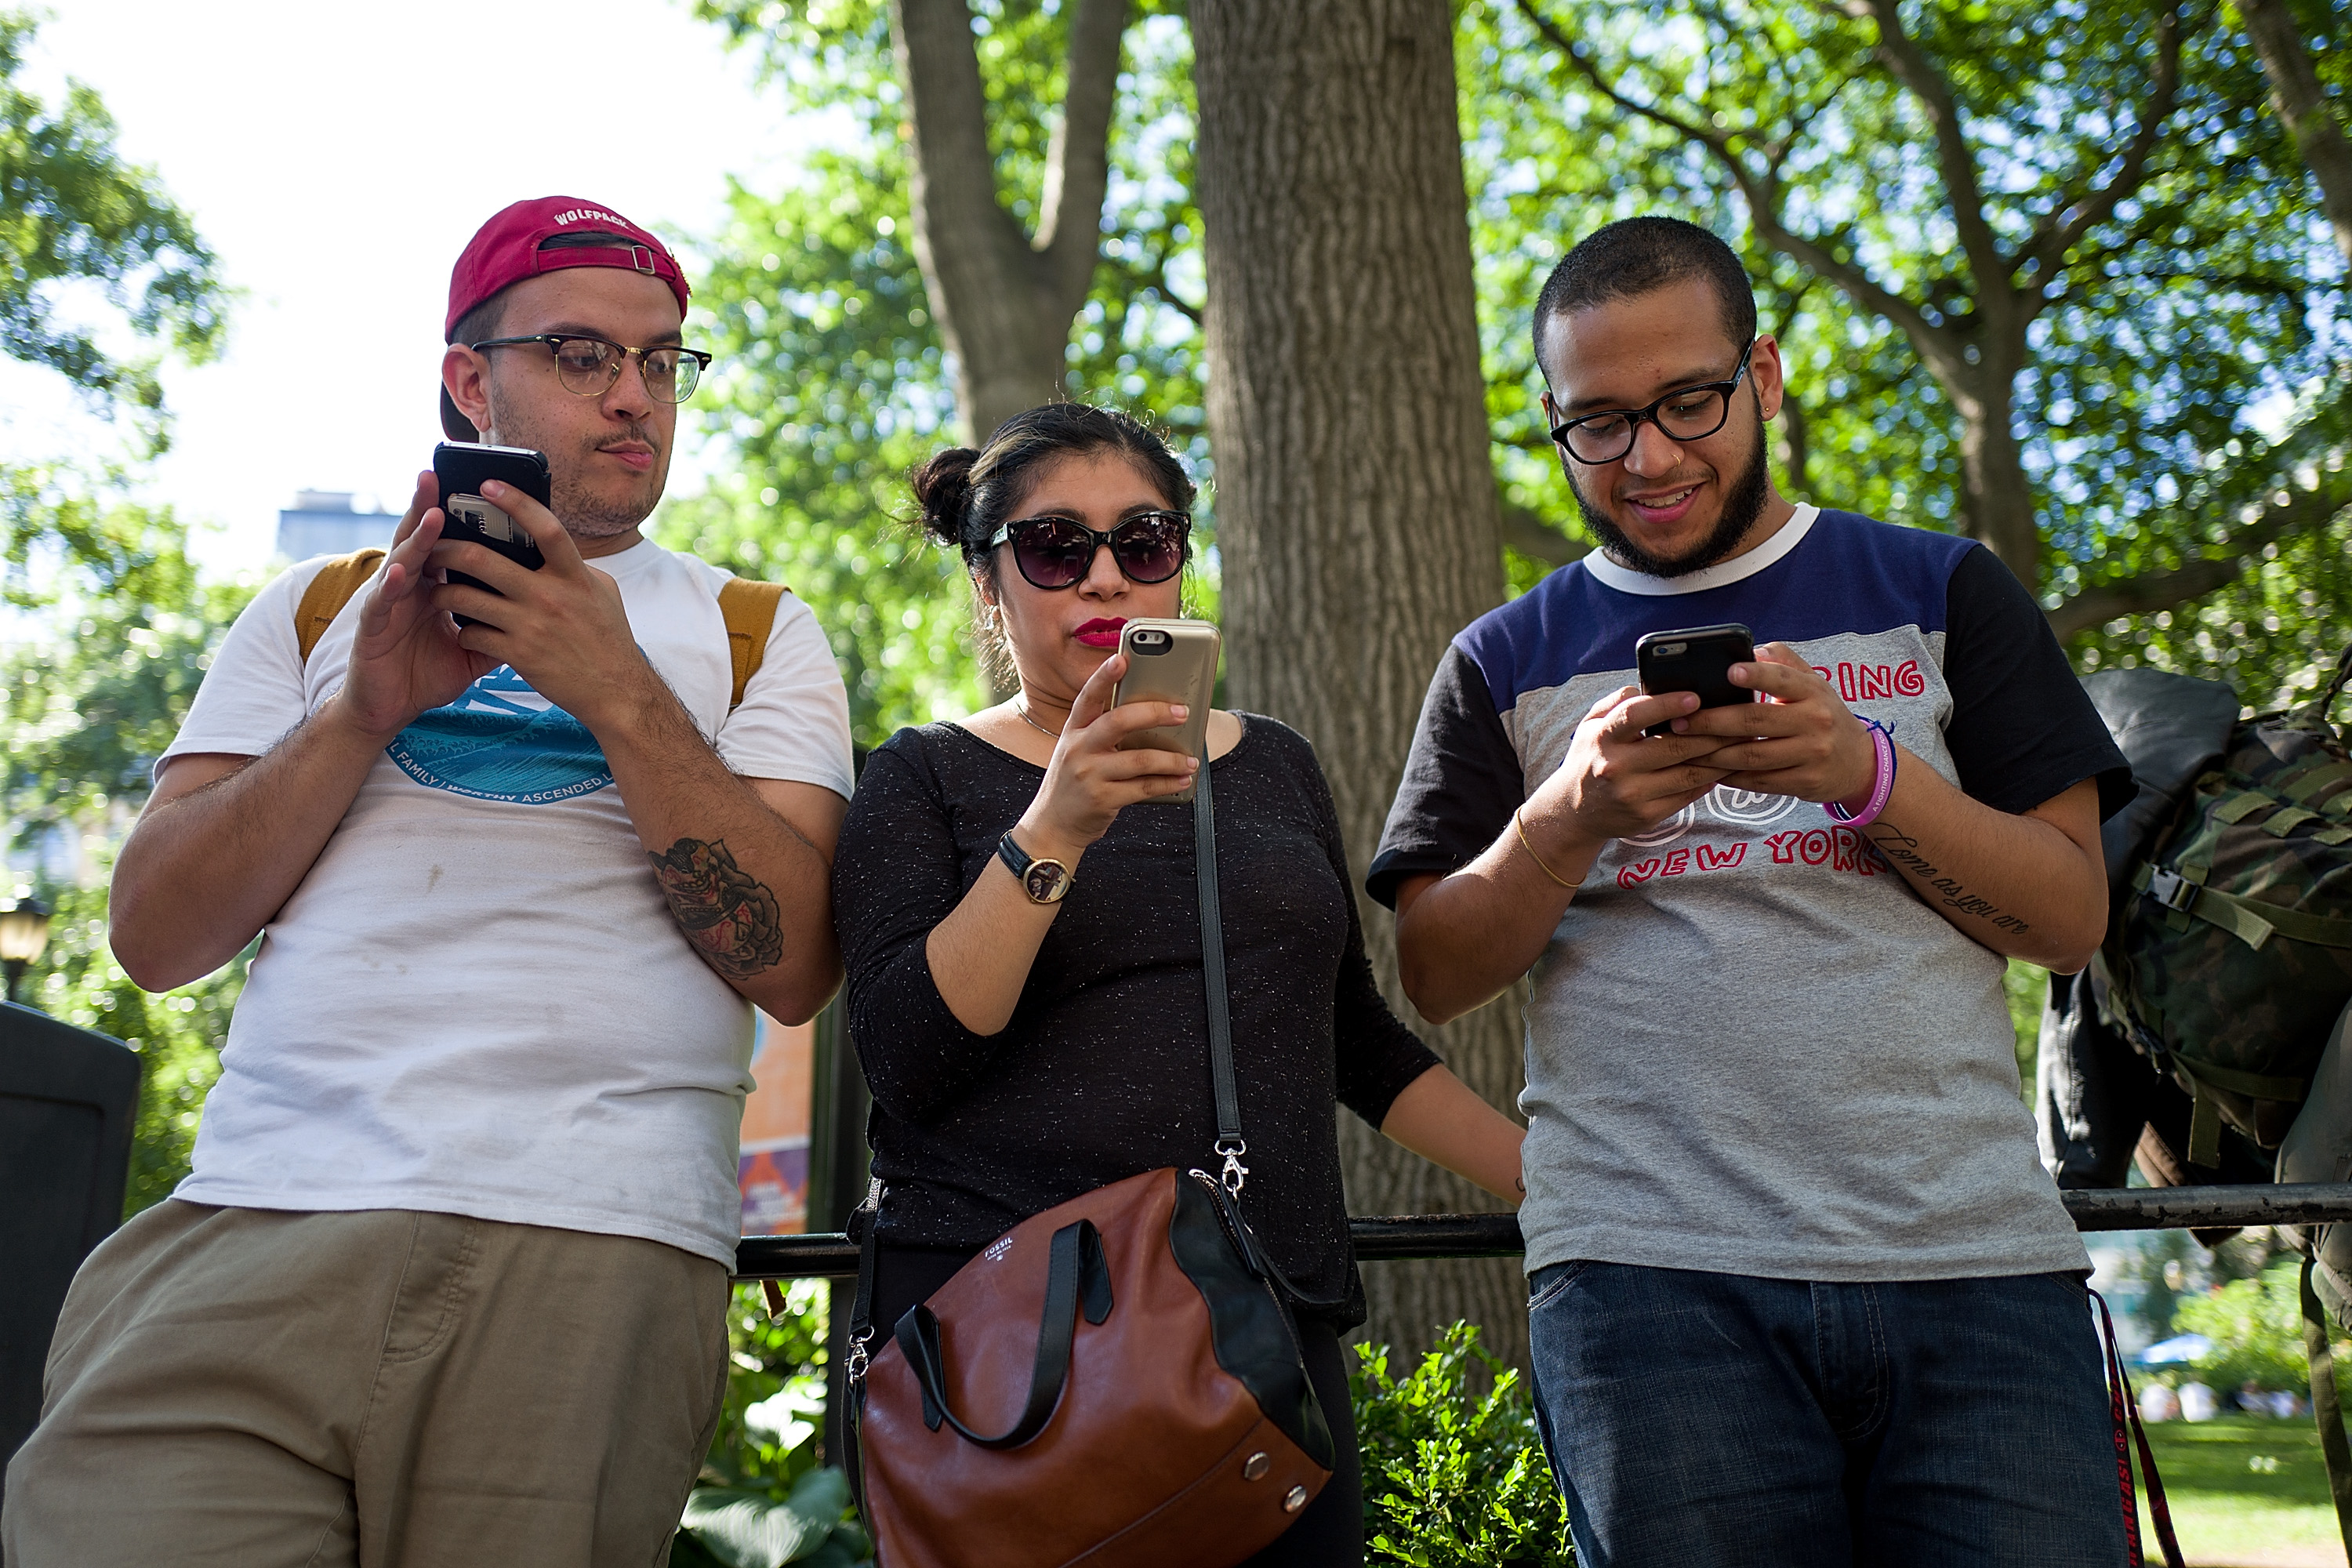 NEW YORK, NY - JULY 11: A group of friends play Pokemon Go on their smartphones at Union Square, July 11, 2016 in New York City. The success of Nintendo's new smartphone game, Pokemon Go, has sent shares of Nintendo soaring. (Photo by Drew Angerer/Getty Images)